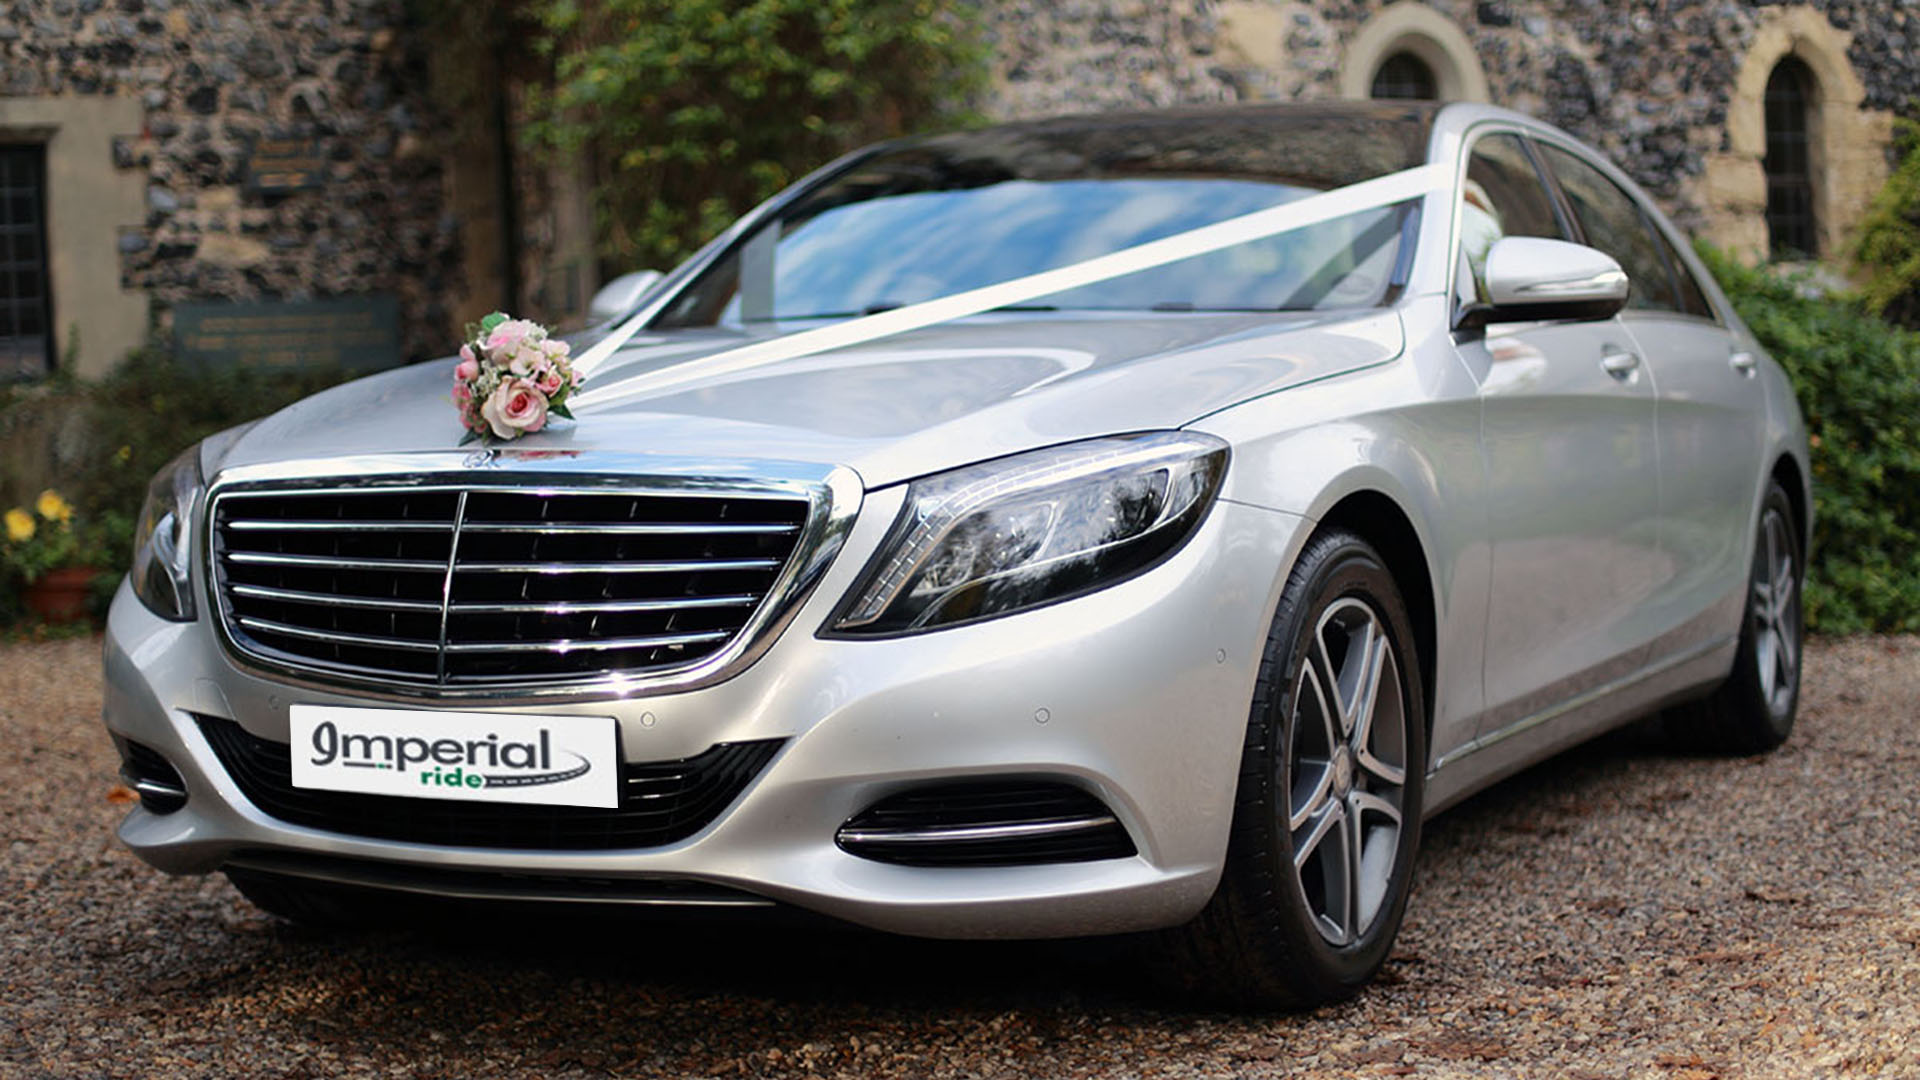 s-class-wedding-hire-in-waltham-forest